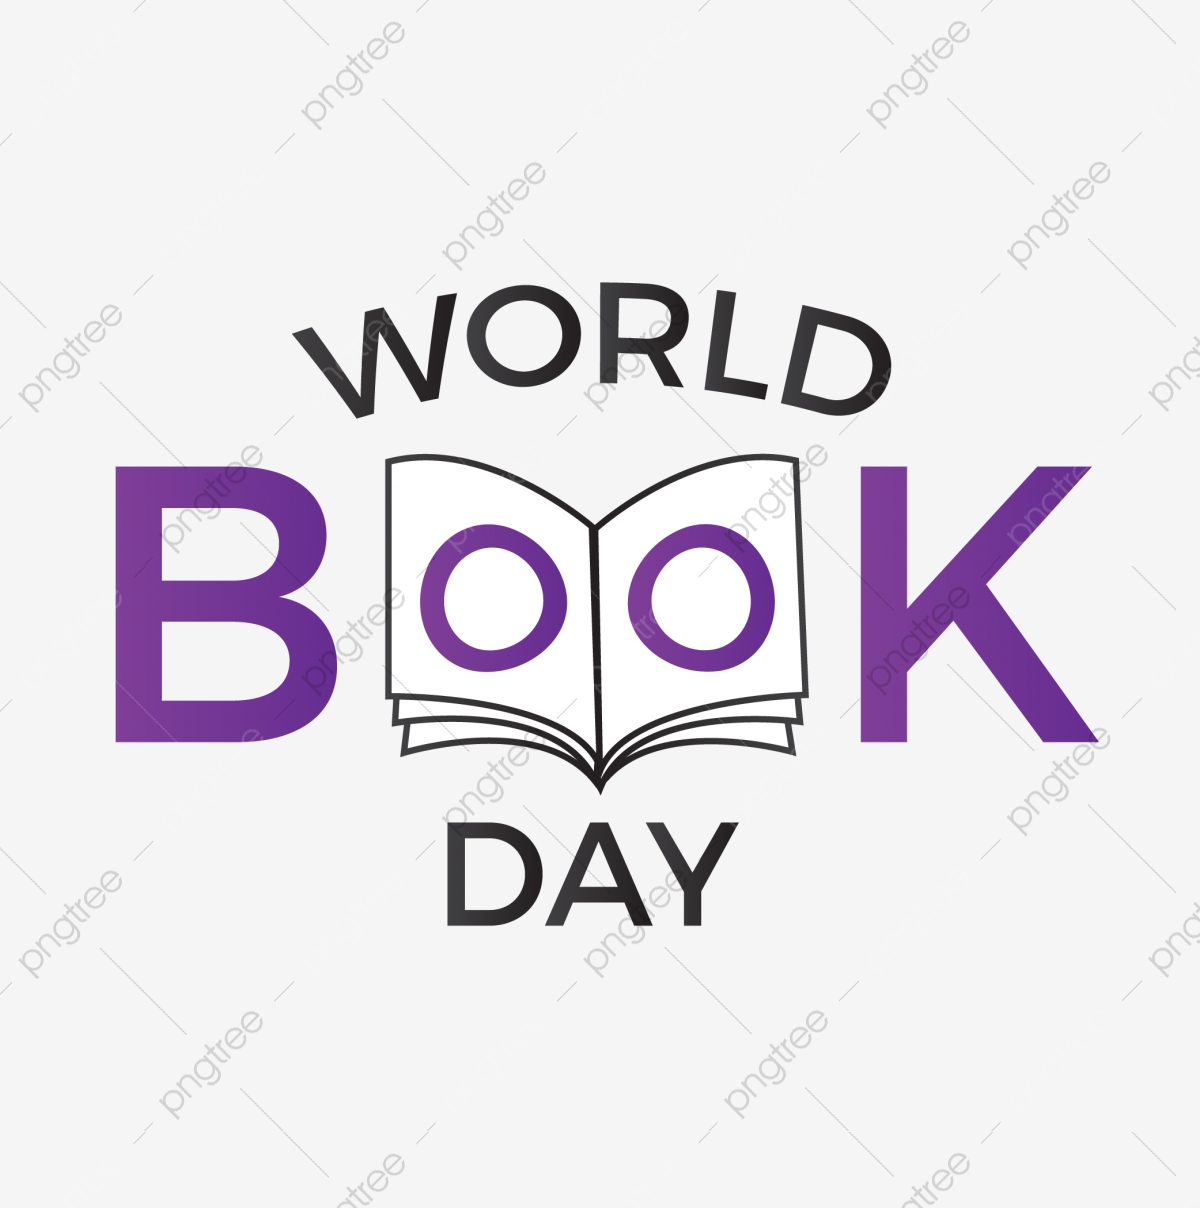 World Book Day Lettering Typography With Book Illustration